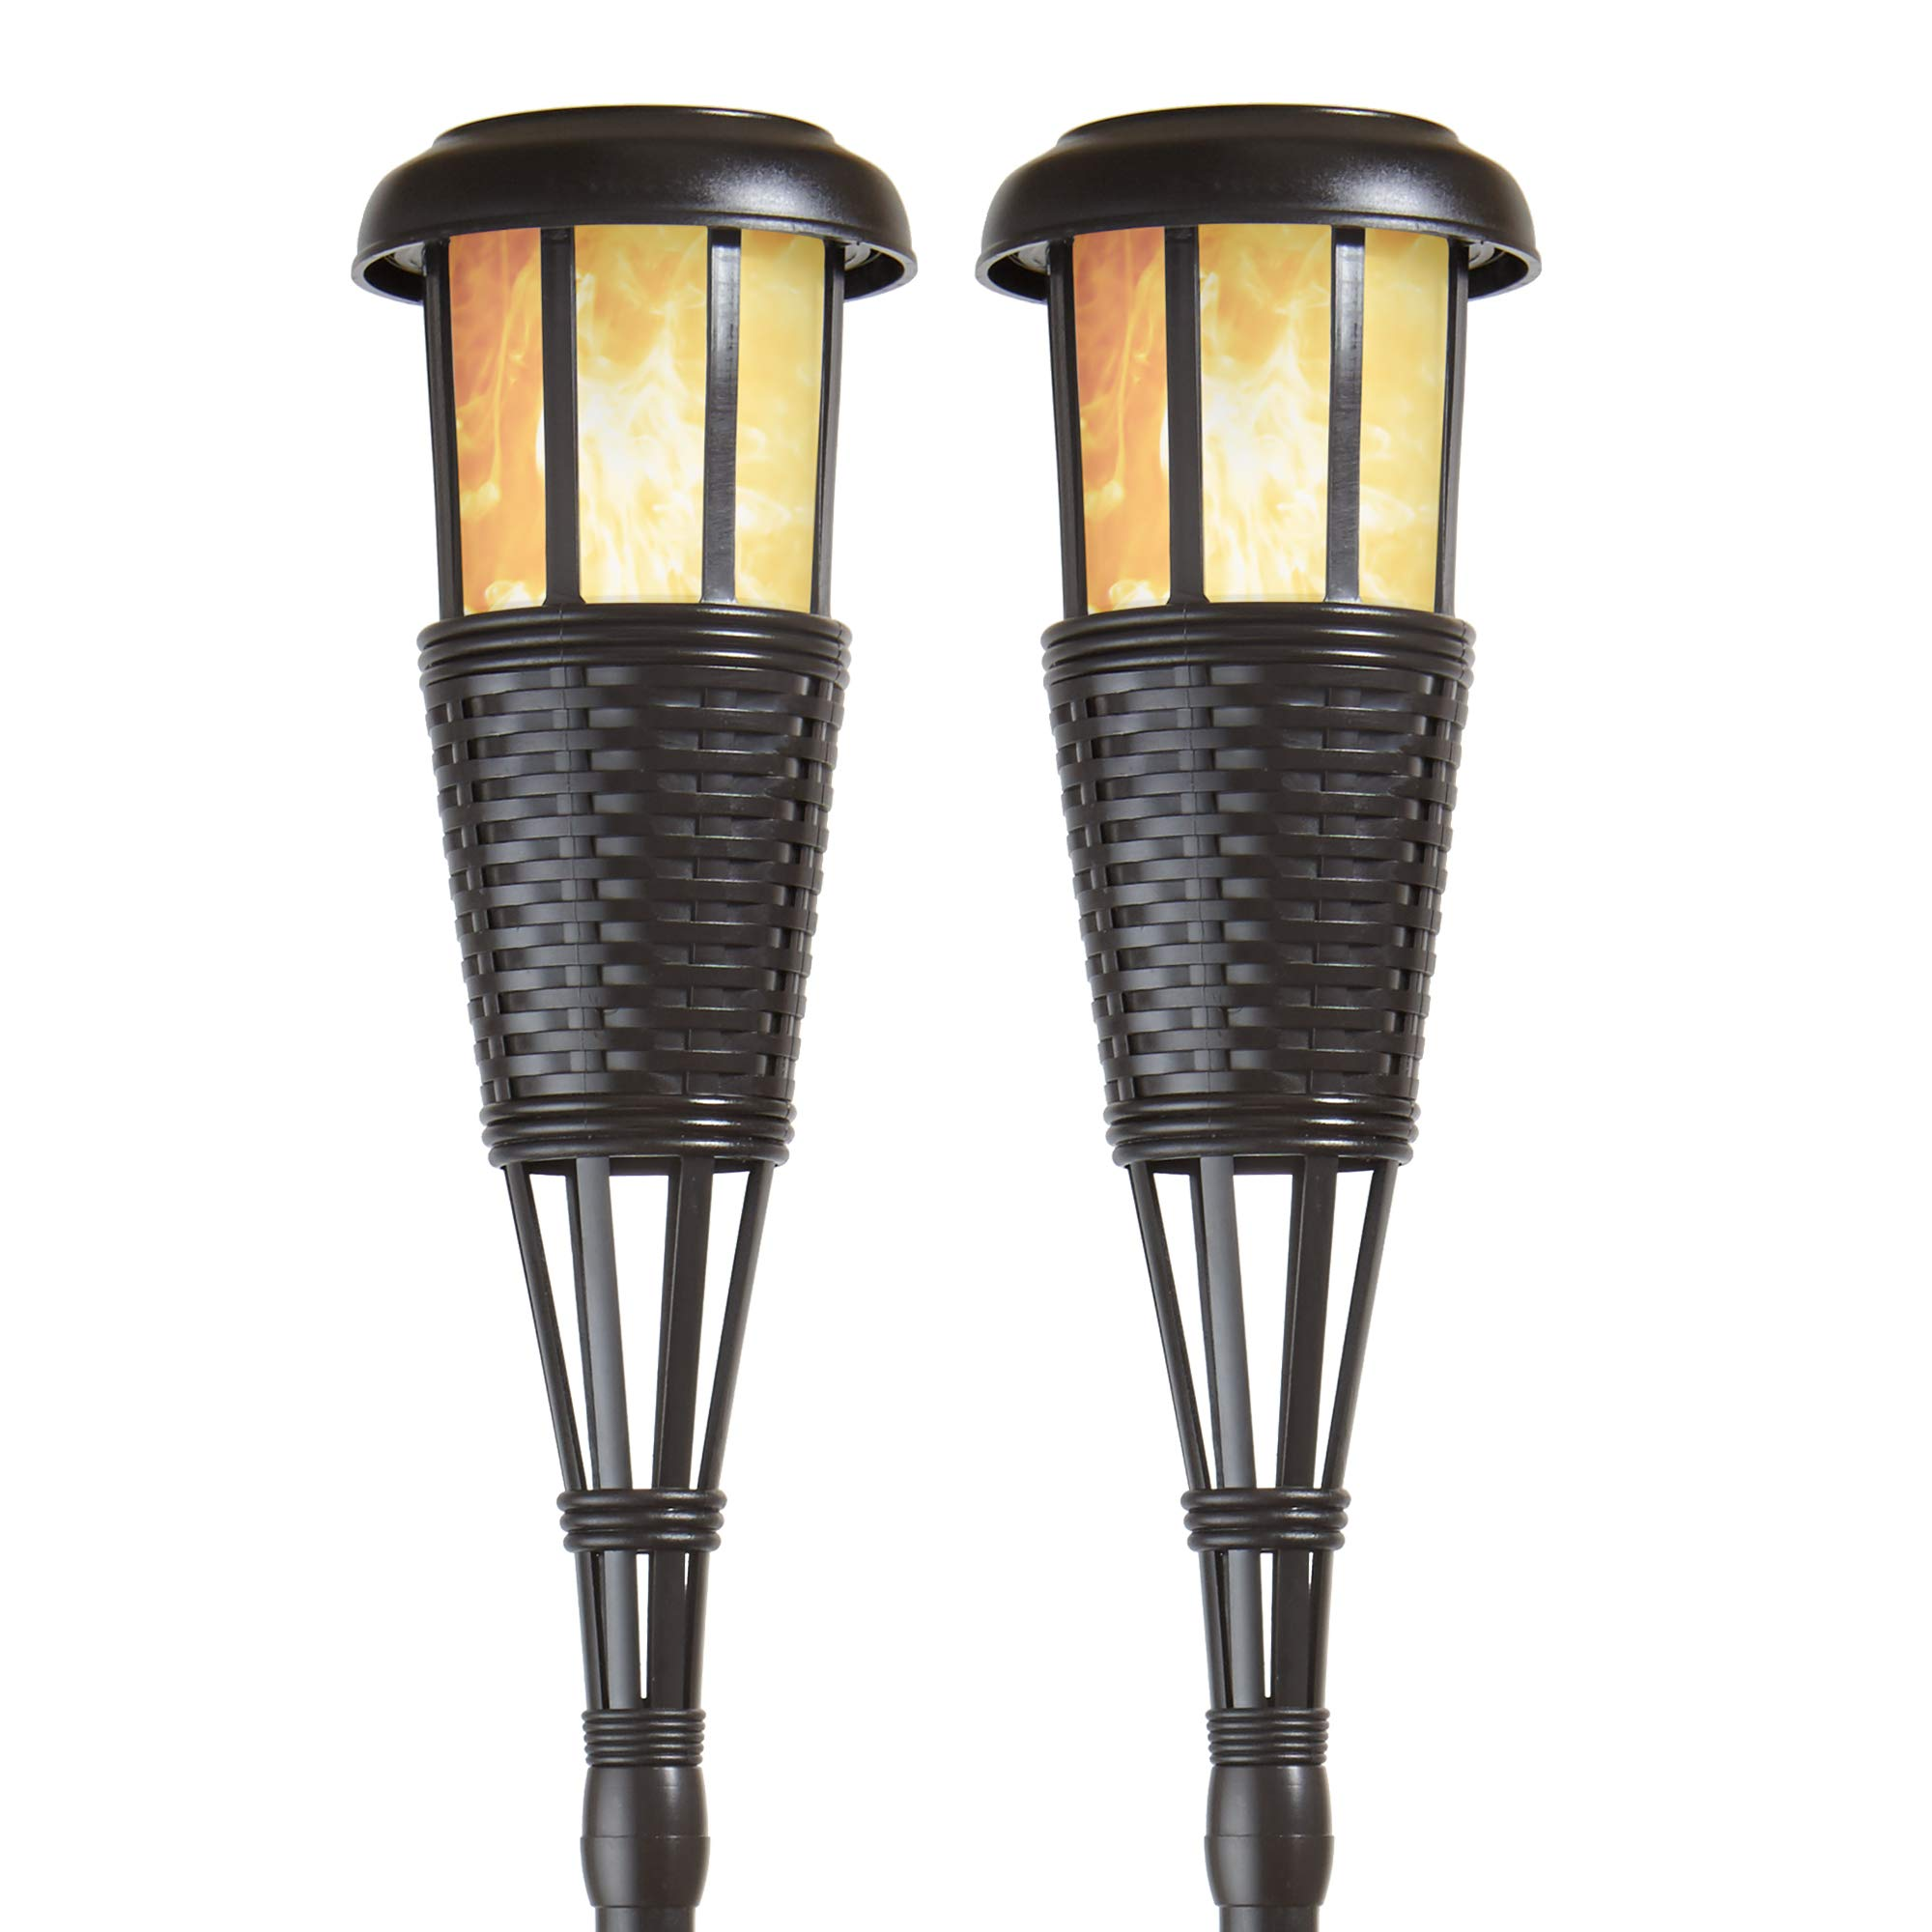 Newhouse Lighting FLTORCH2-B Solar-Powered Flickering Flame Effect LED Outdoor Island Torches For Landscape Lighting, Black Dark Chocolate Finish, 2-Pack